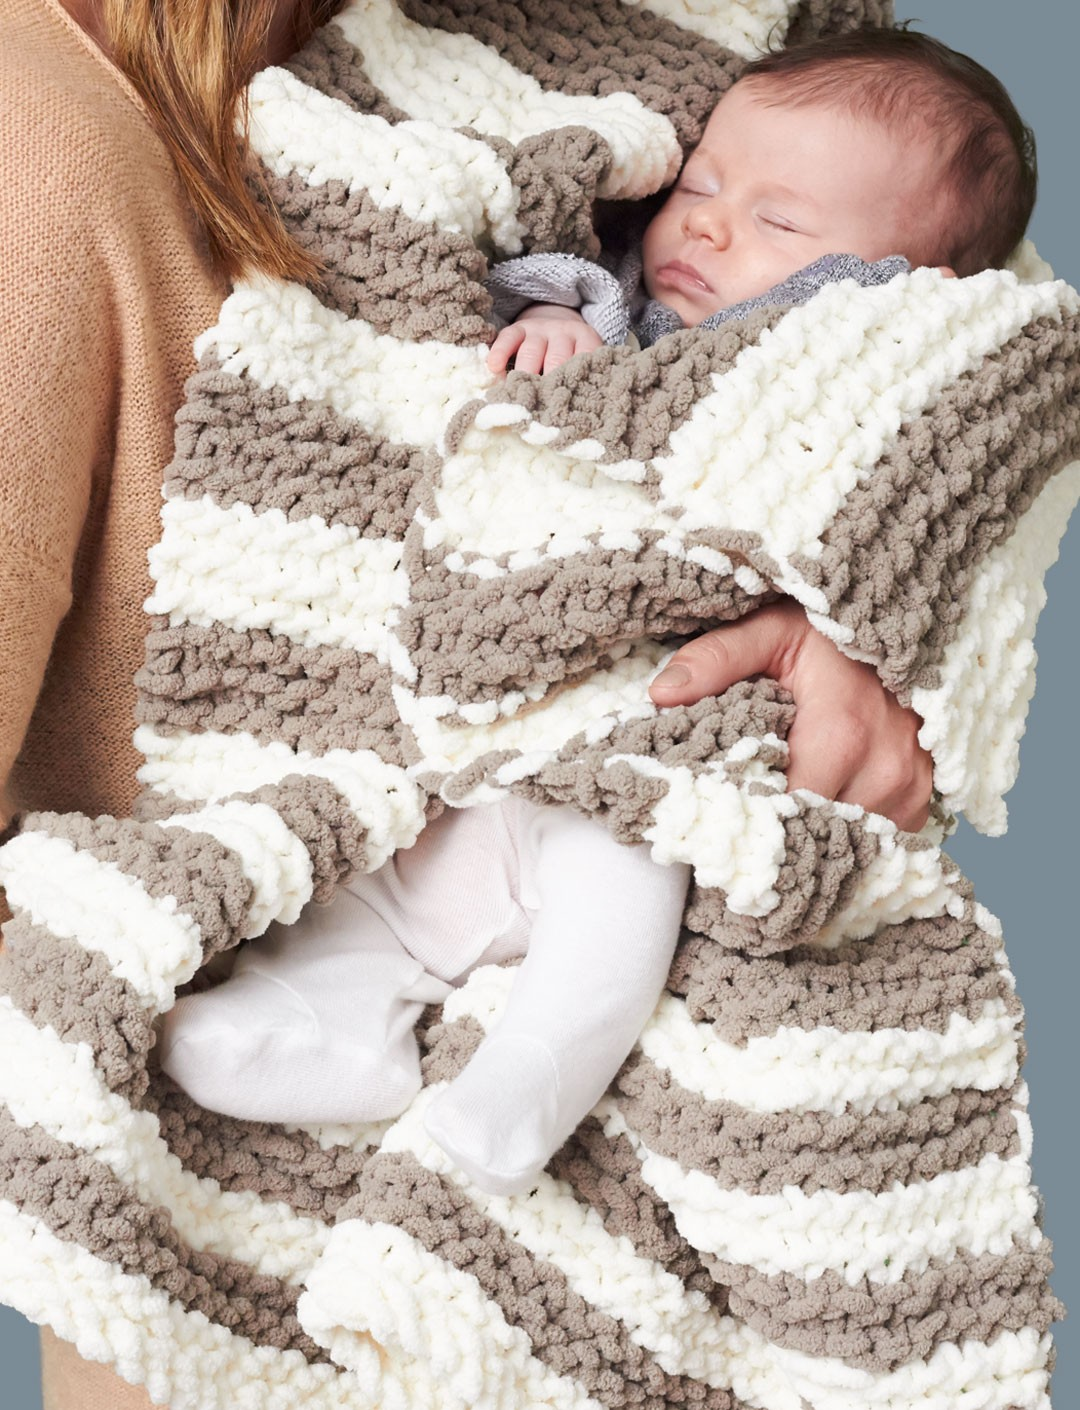 Bernat Baby Blanket Knitting Patterns : Bernat In A Wink Baby Blanket, Knit Pattern Yarnspirations